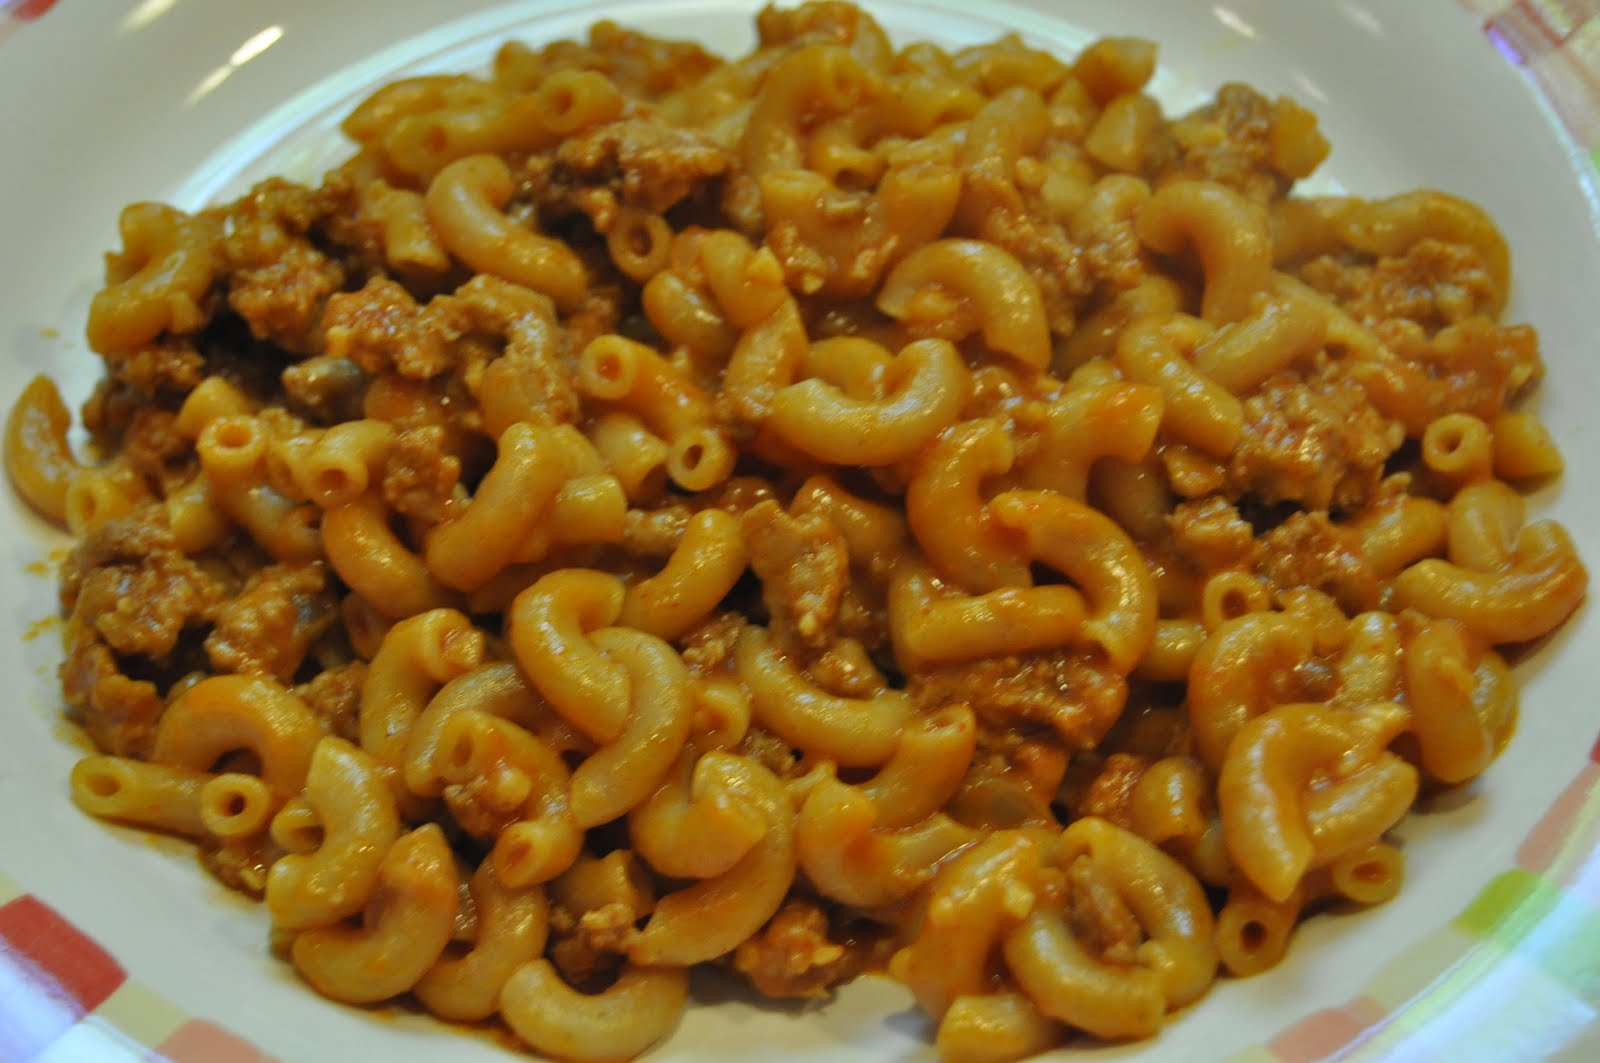 Easy Meals for Moms: One Pot Chili Mac